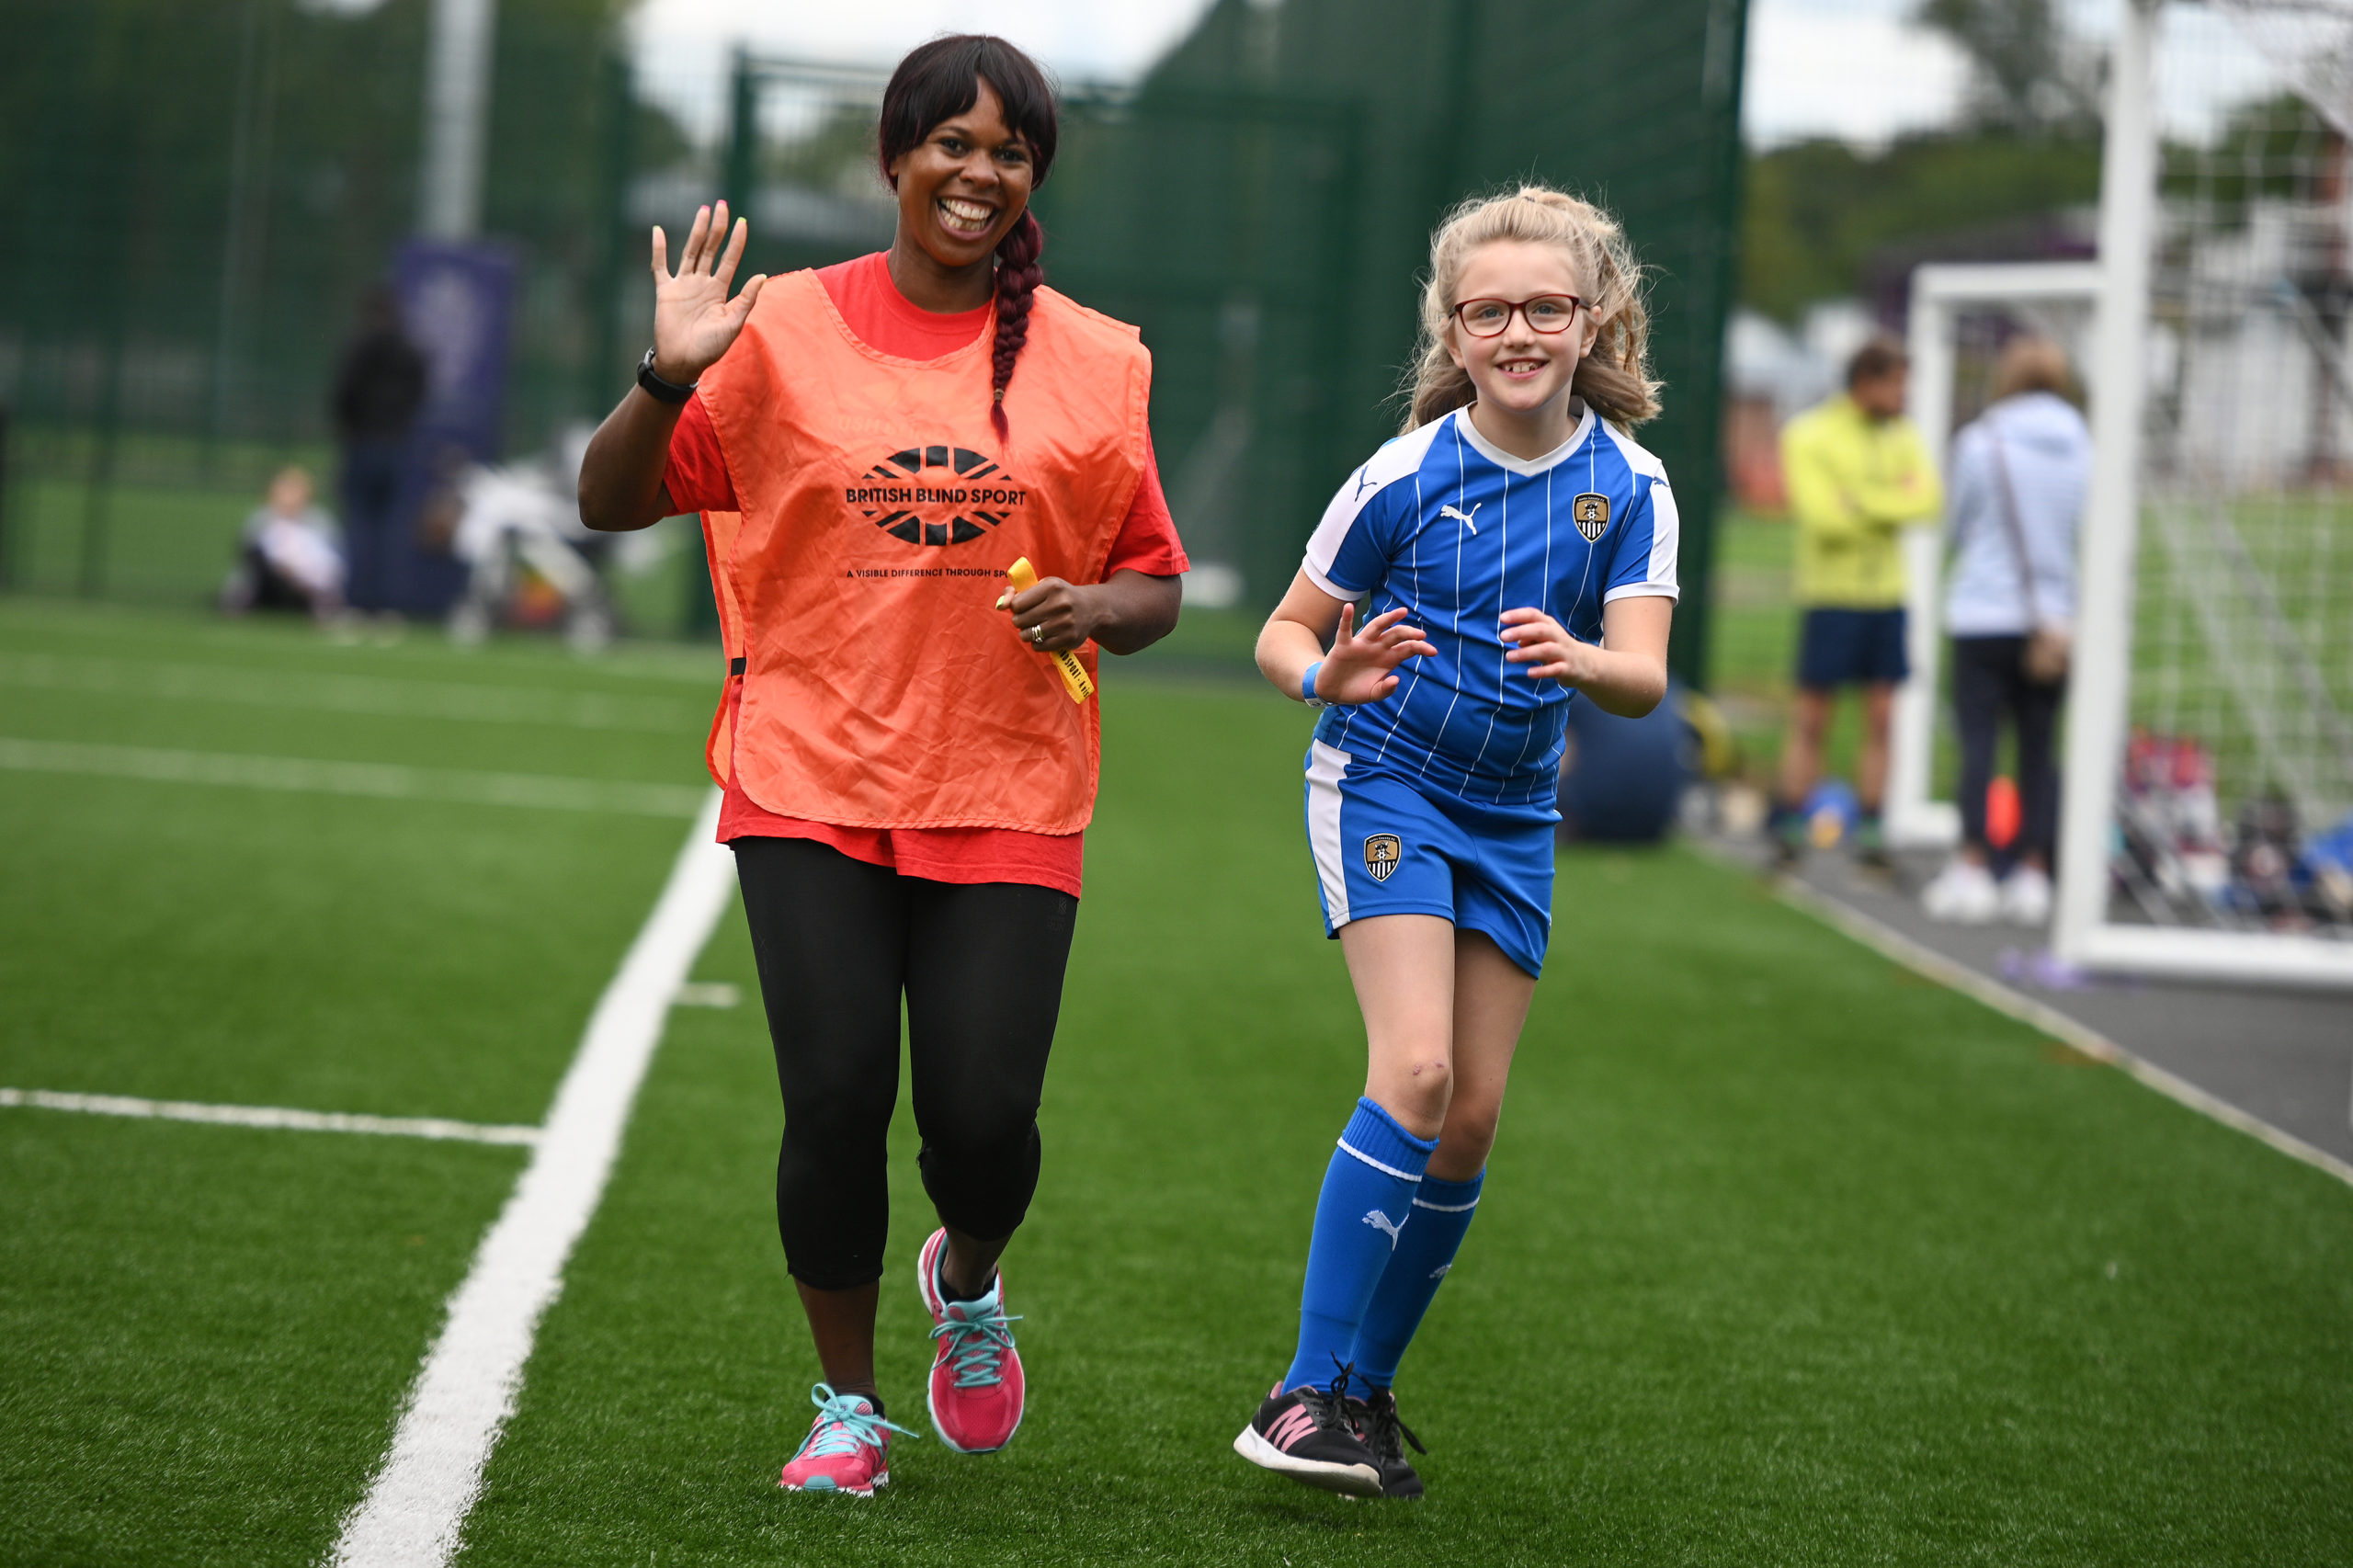 British Blind Sport releases new impact report